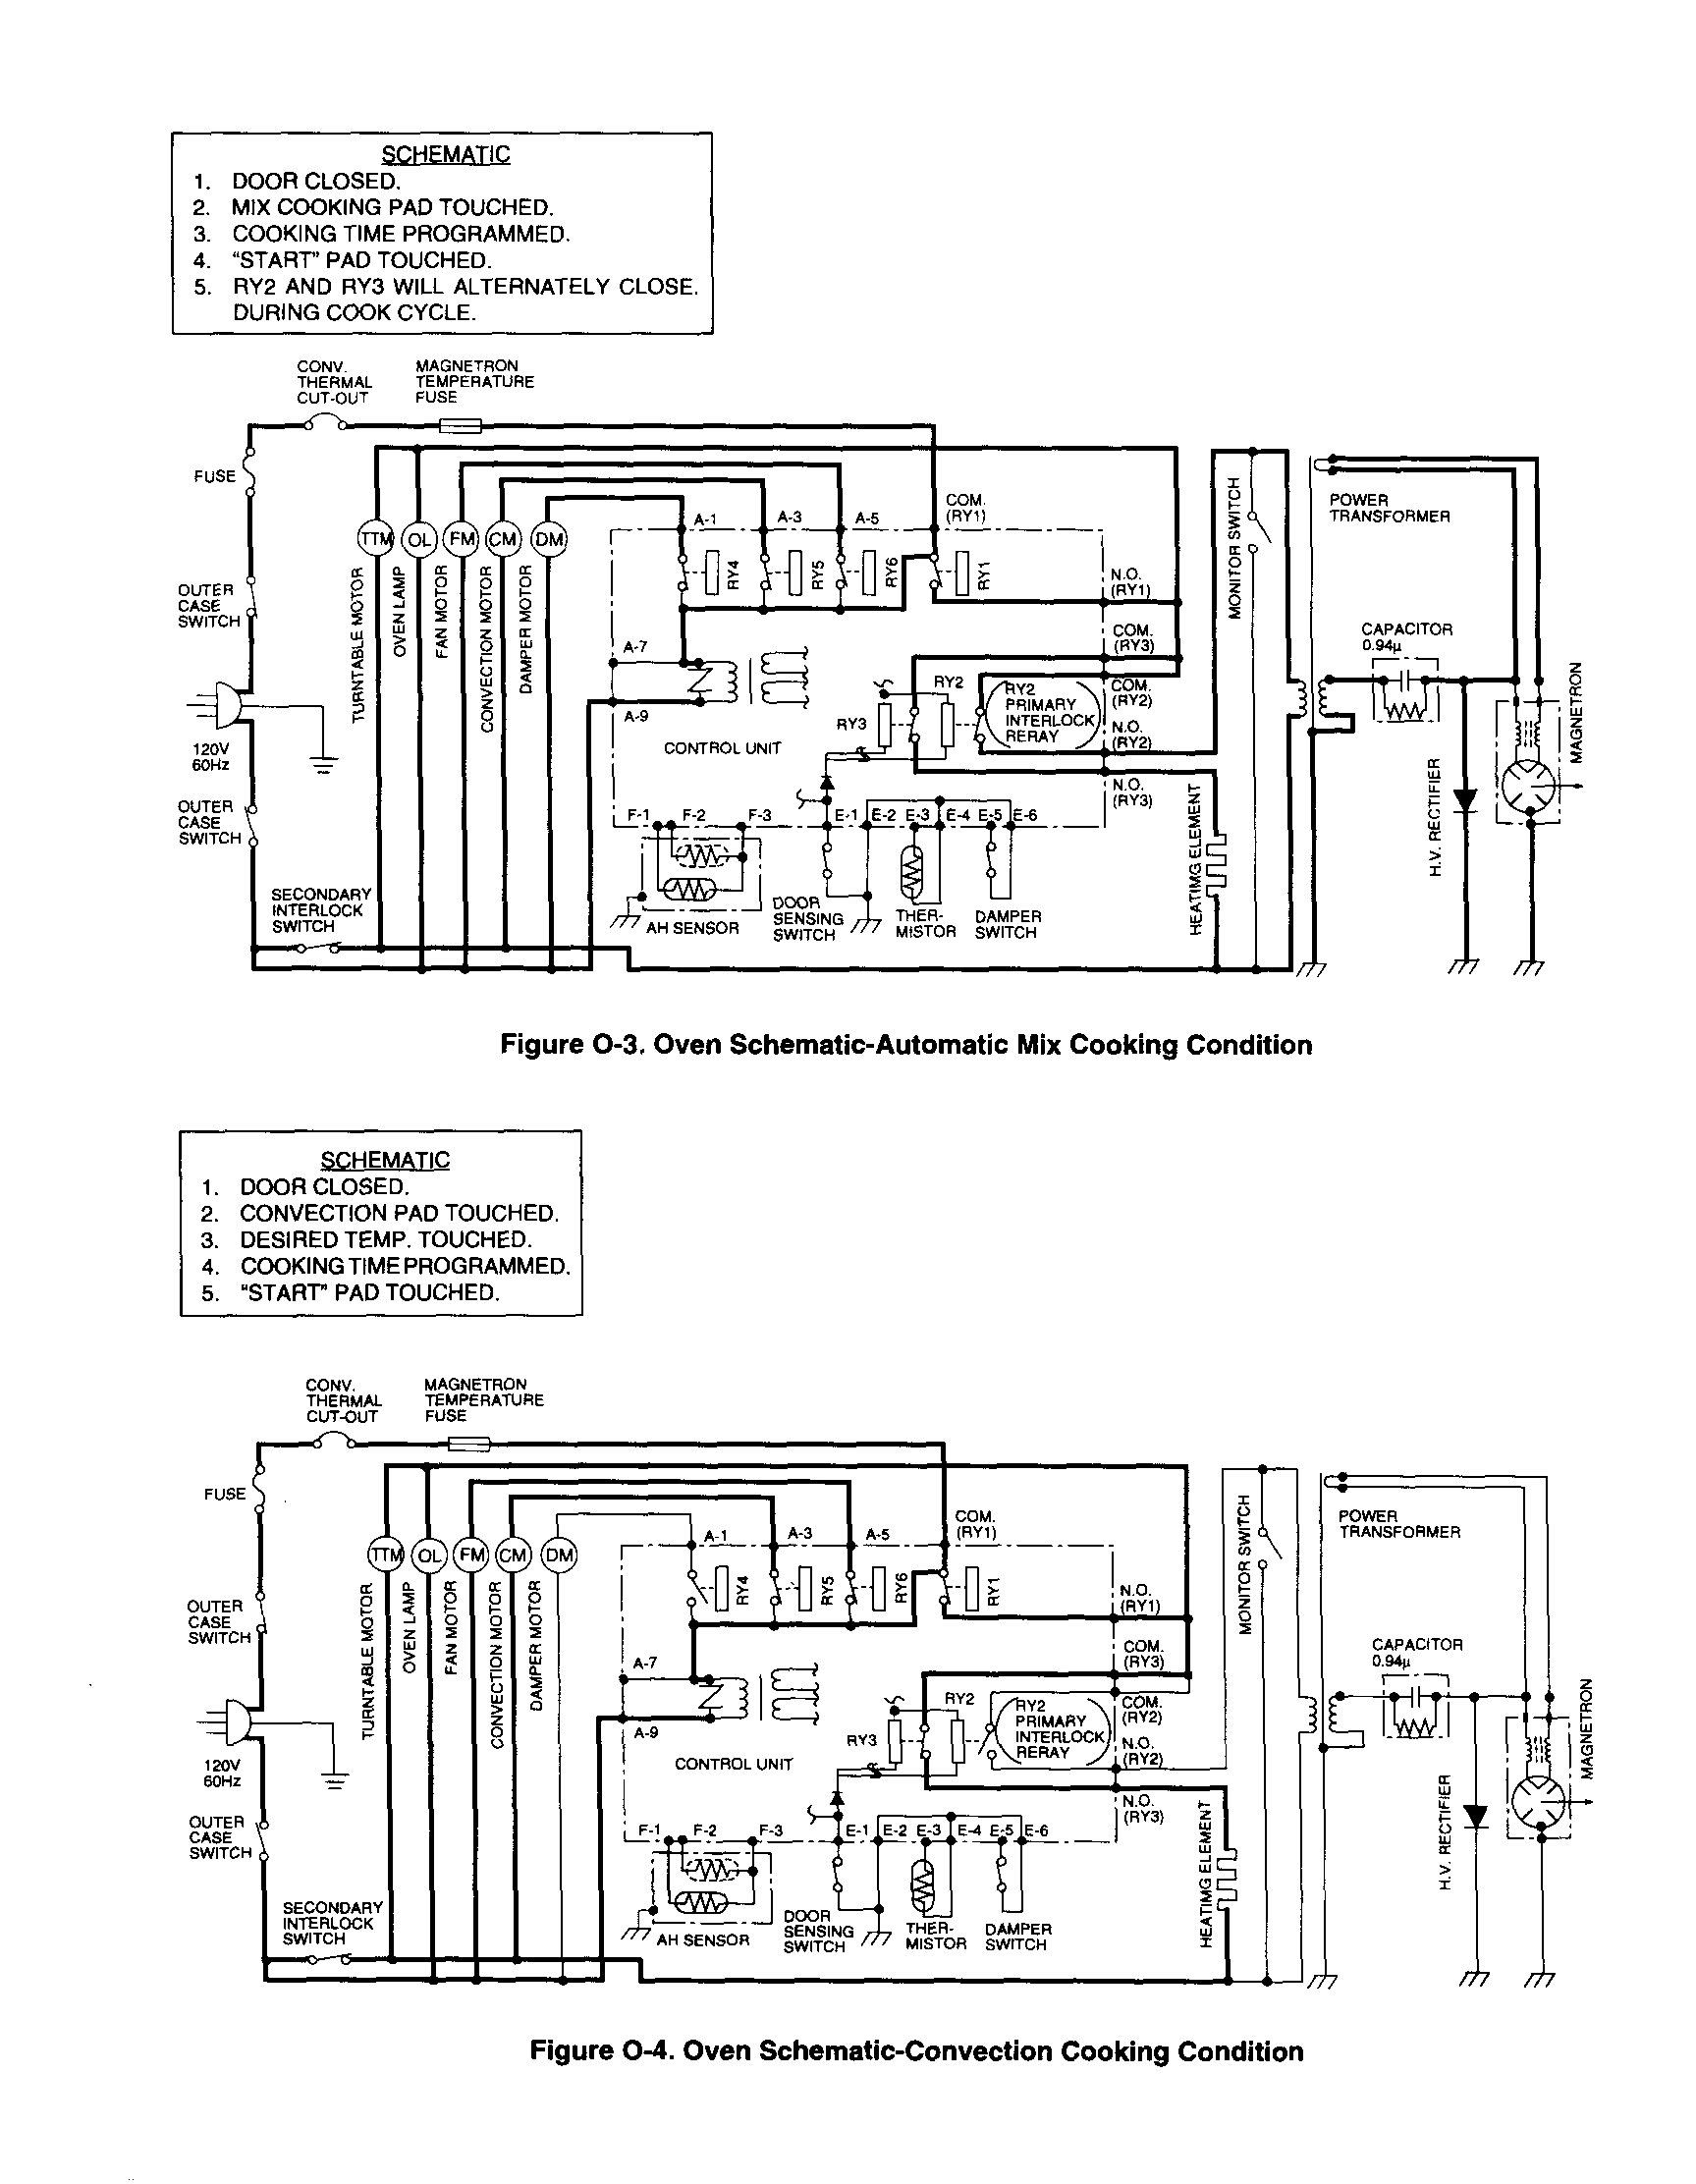 OVEN SCHEMATIC Diagram & Parts List for Model R-930AK